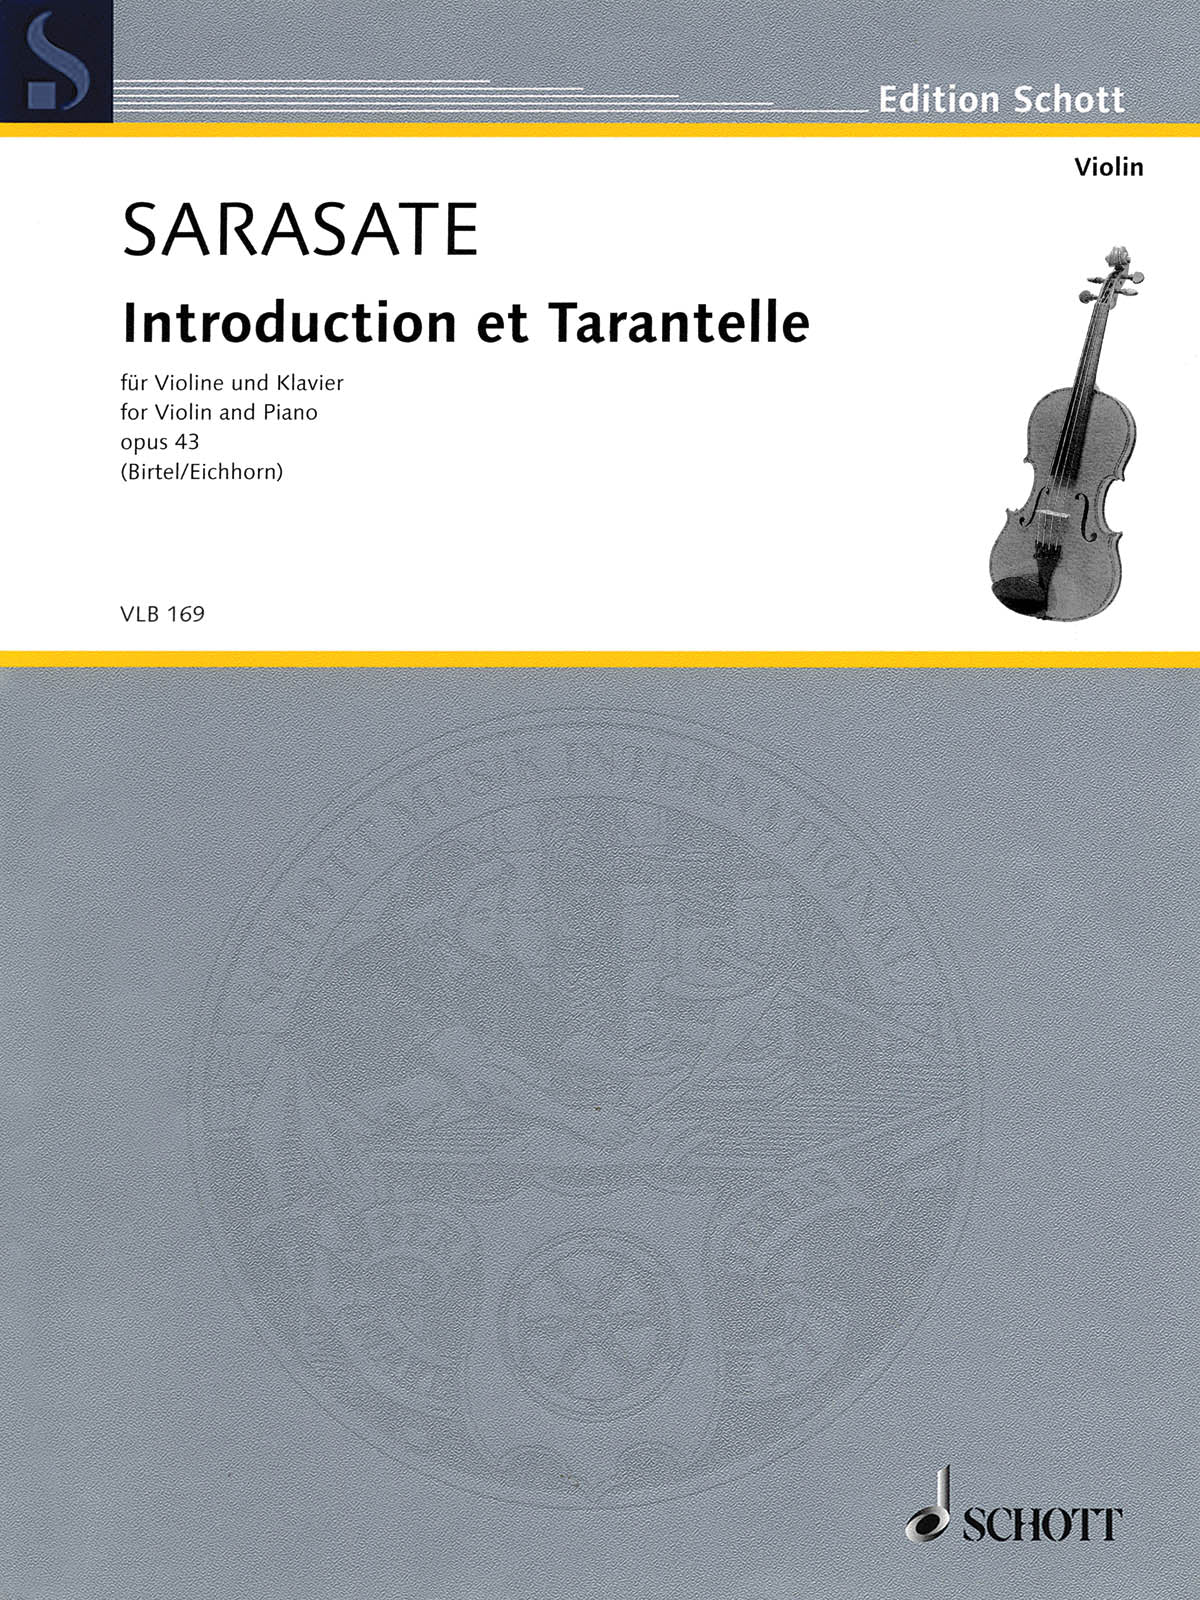 Sarasate: Introduction and Tarantelle, Op. 43